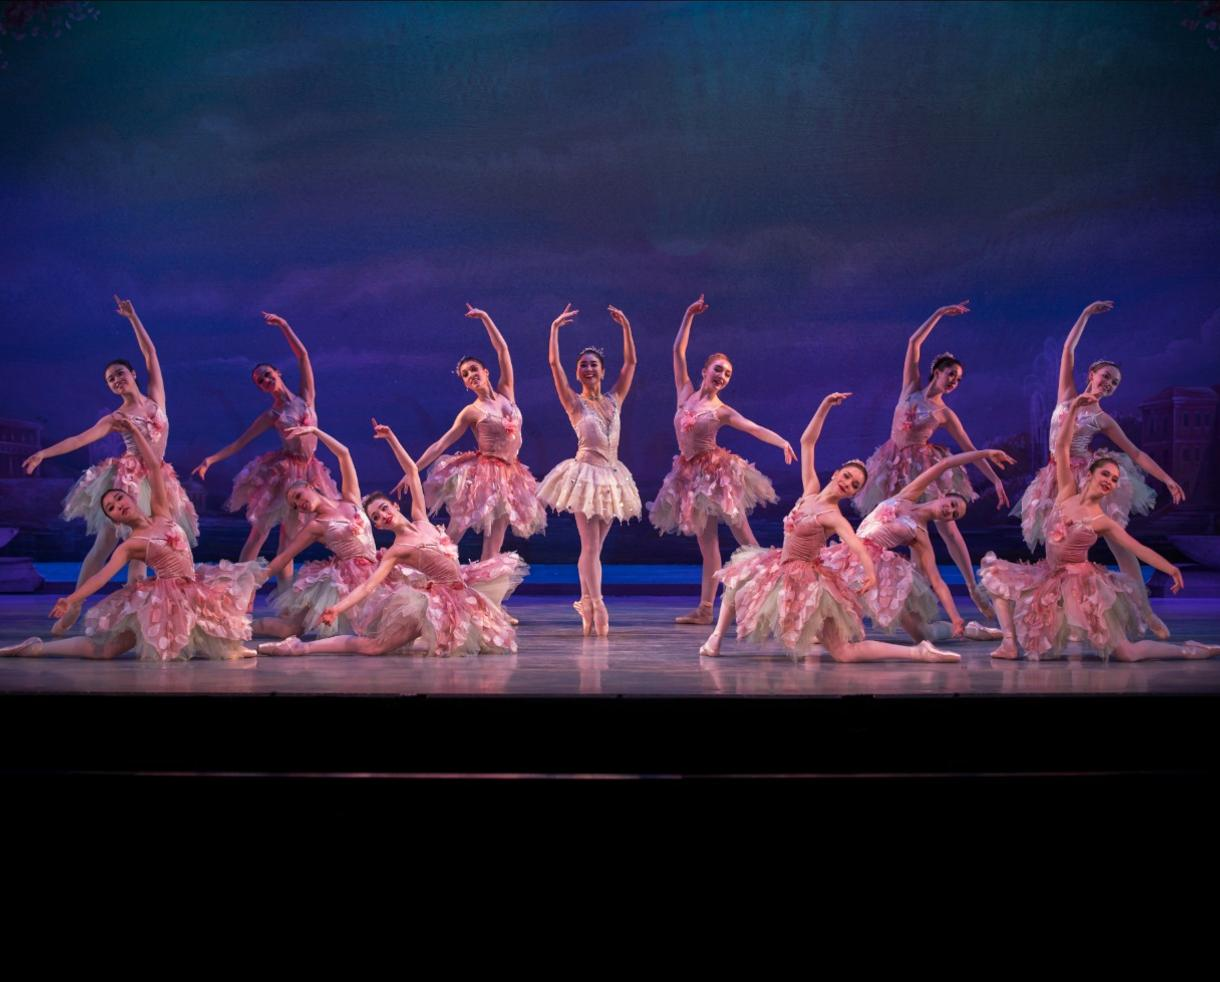 Up to 25% Off The Nutcracker at The Warner Theatre by The Washington Ballet